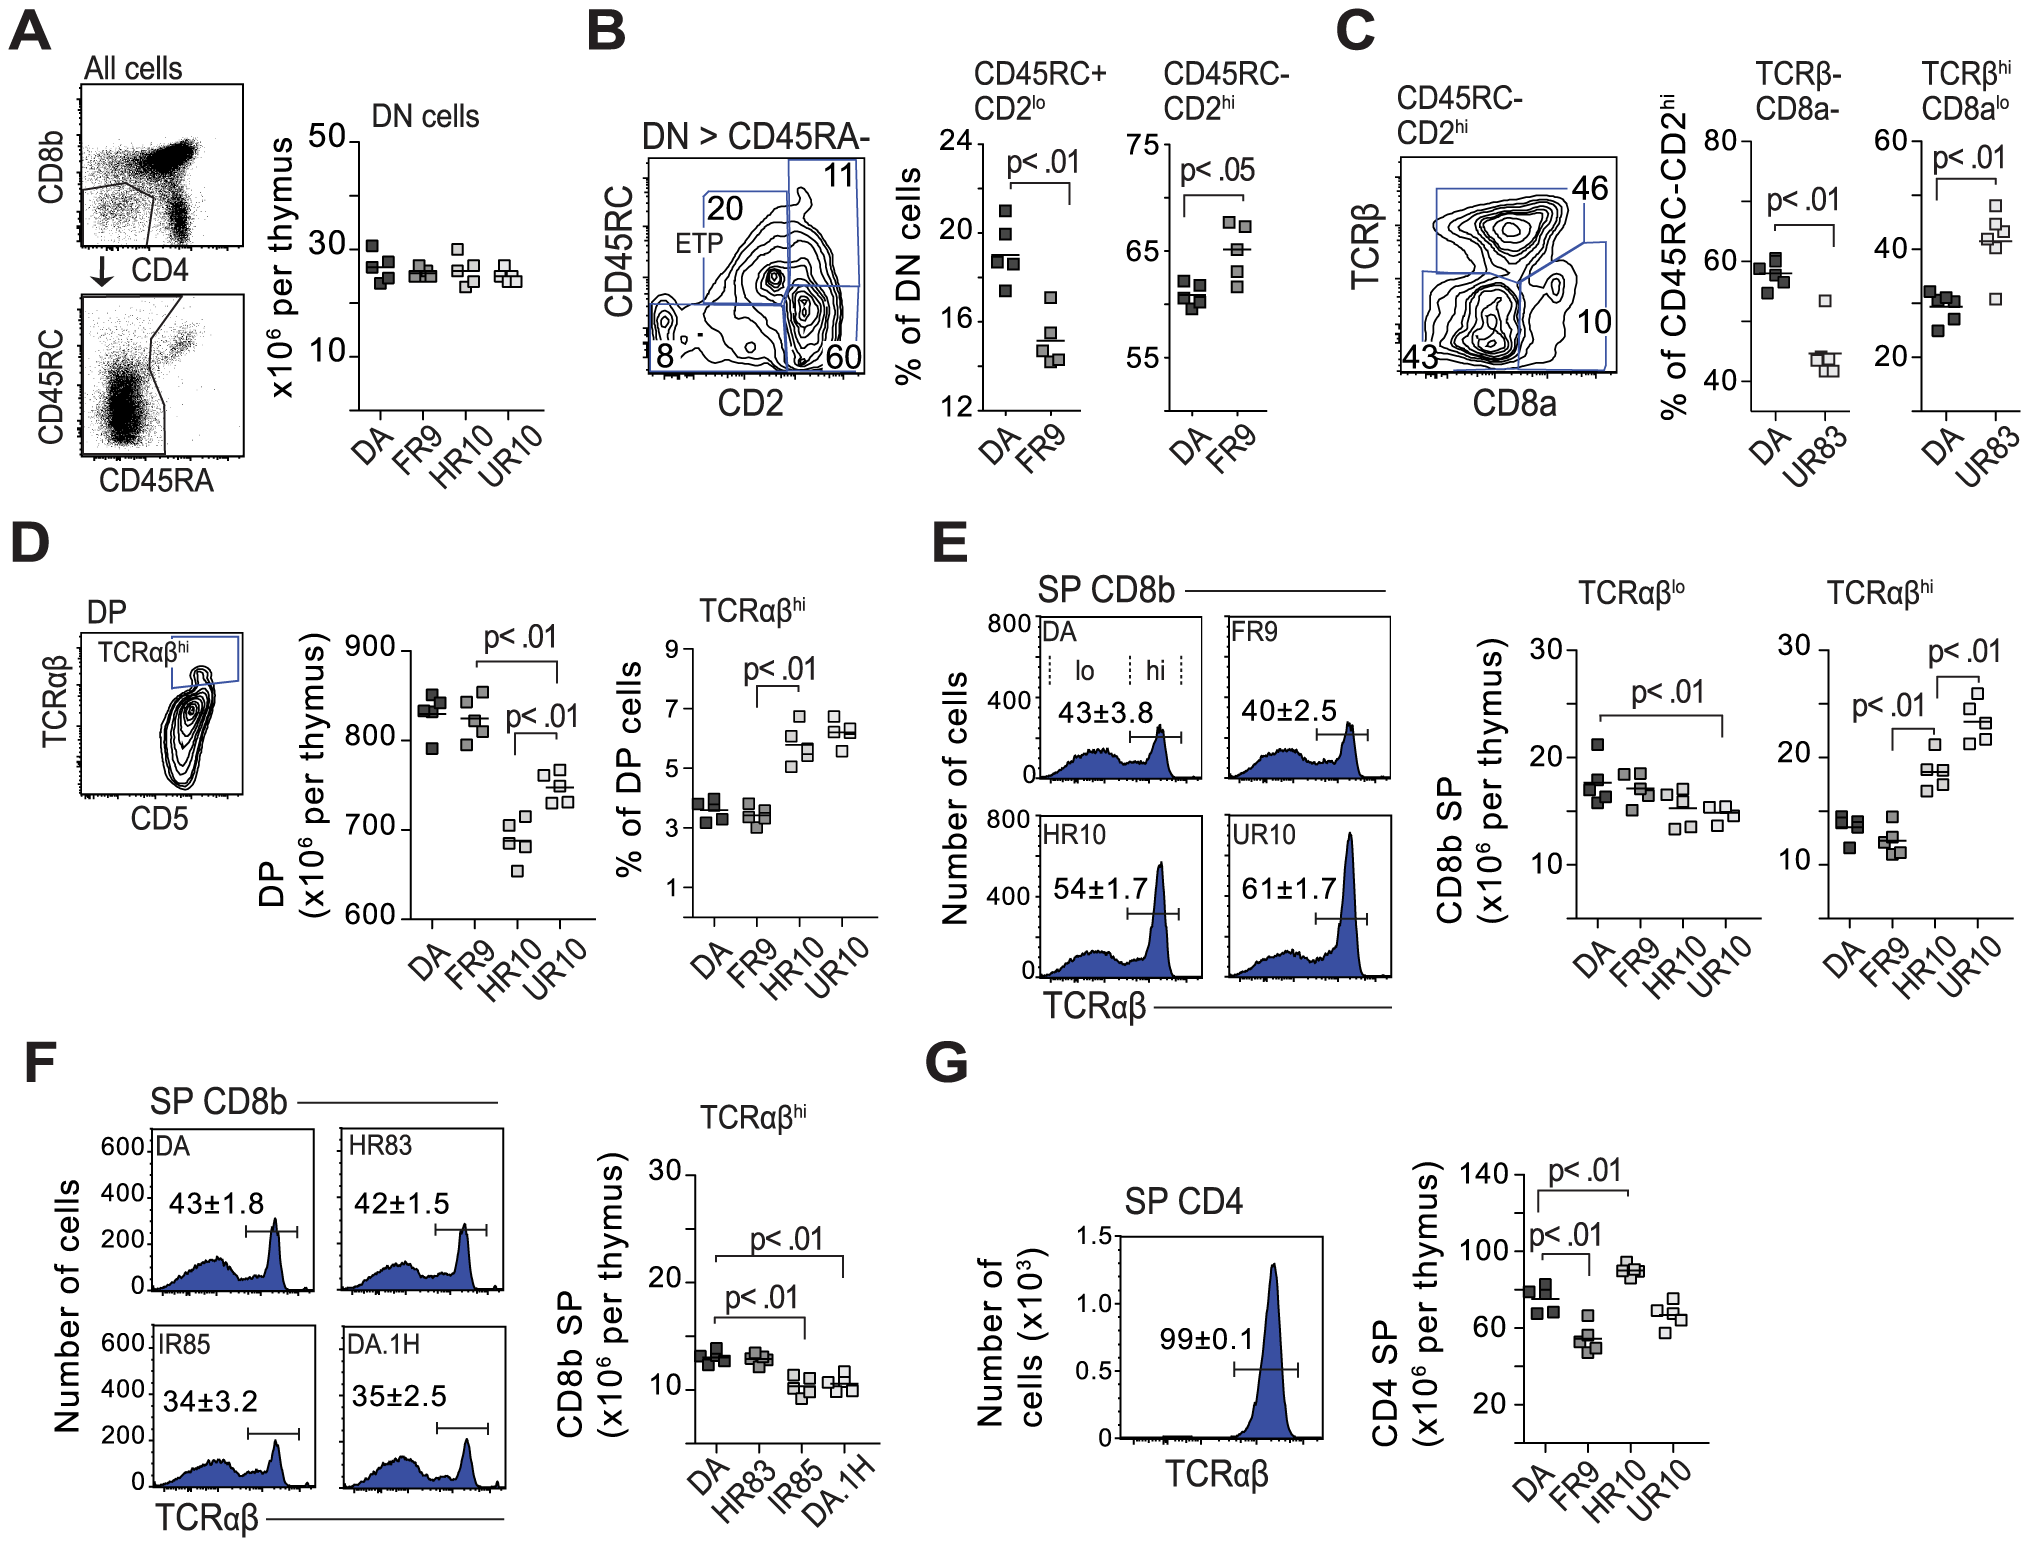 Class-I modification reduces negative selection of CD8 cells.